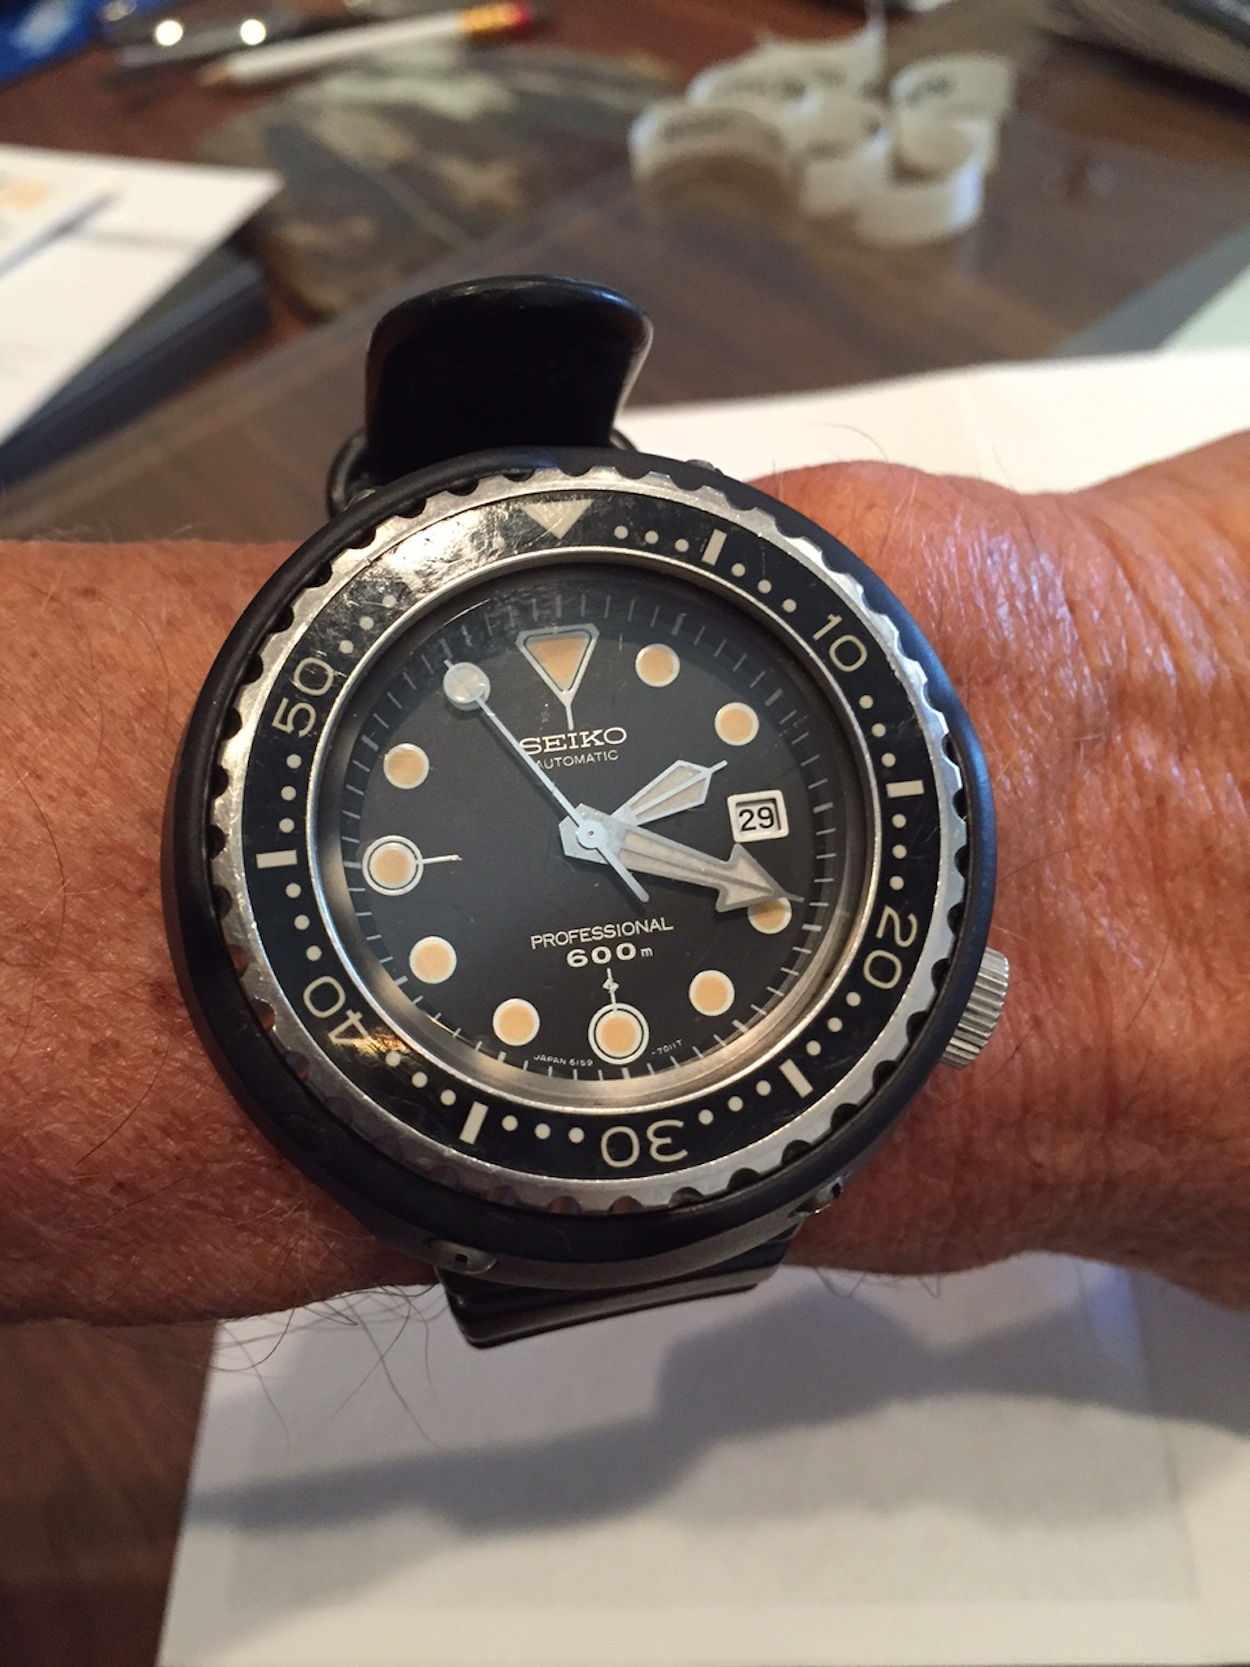 #TBT Extra - Seiko 6159 Tuna original owner